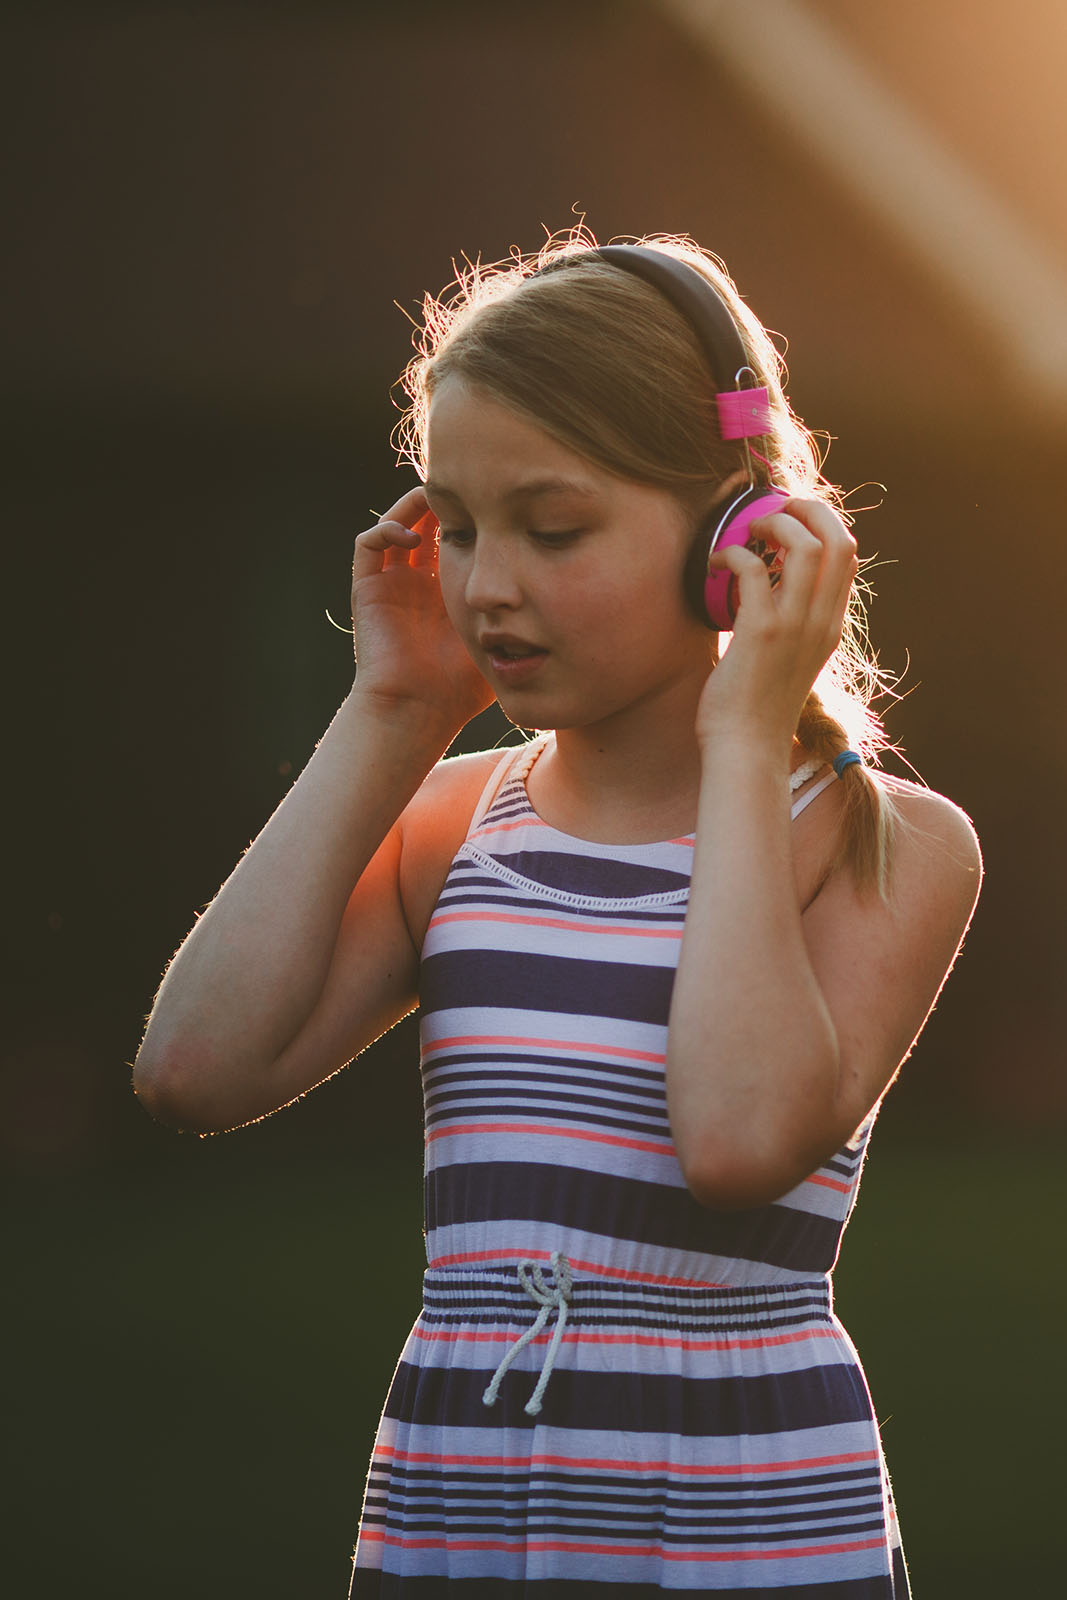 rim light picture of girl listening to her headphones by April Nienhuis